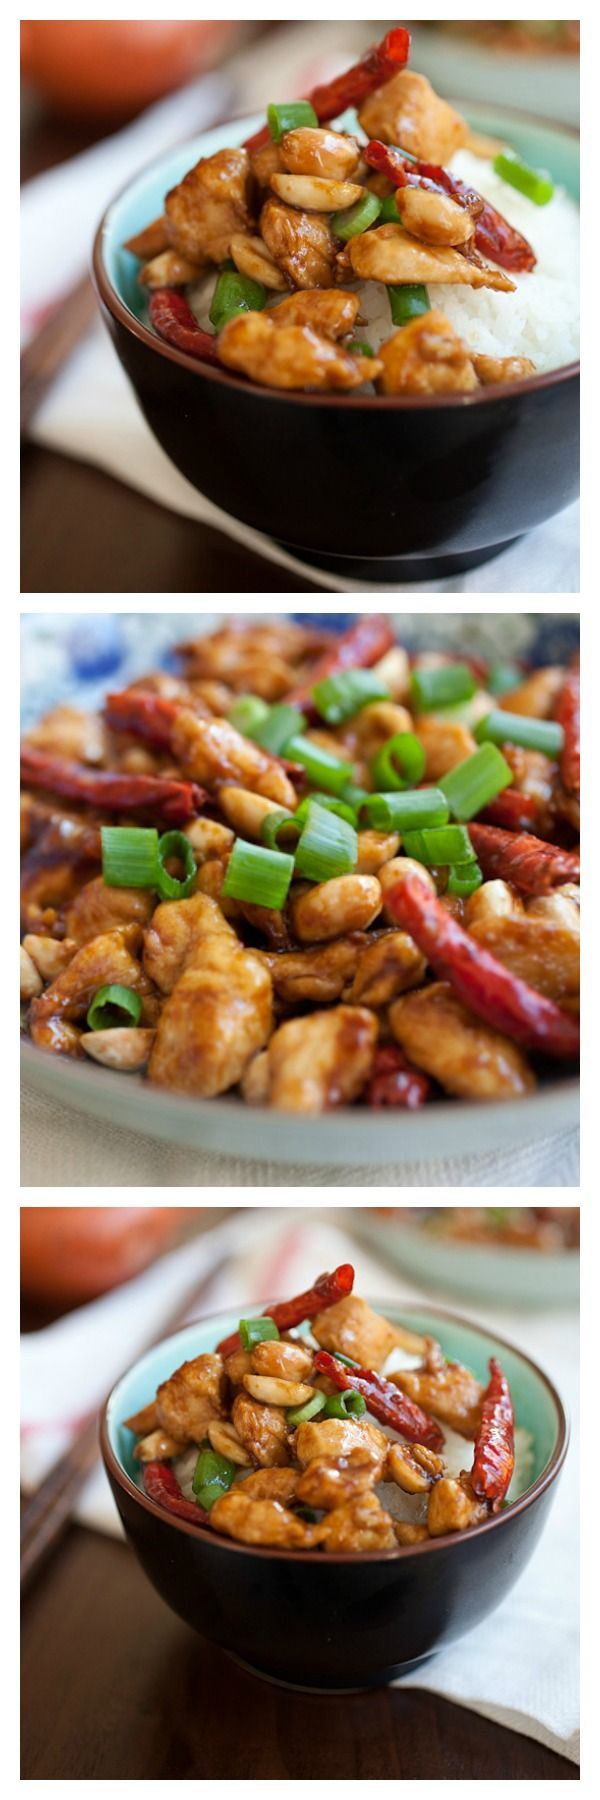 Kung Pao Chicken at home. You can make your favorite Chinese takeout ...